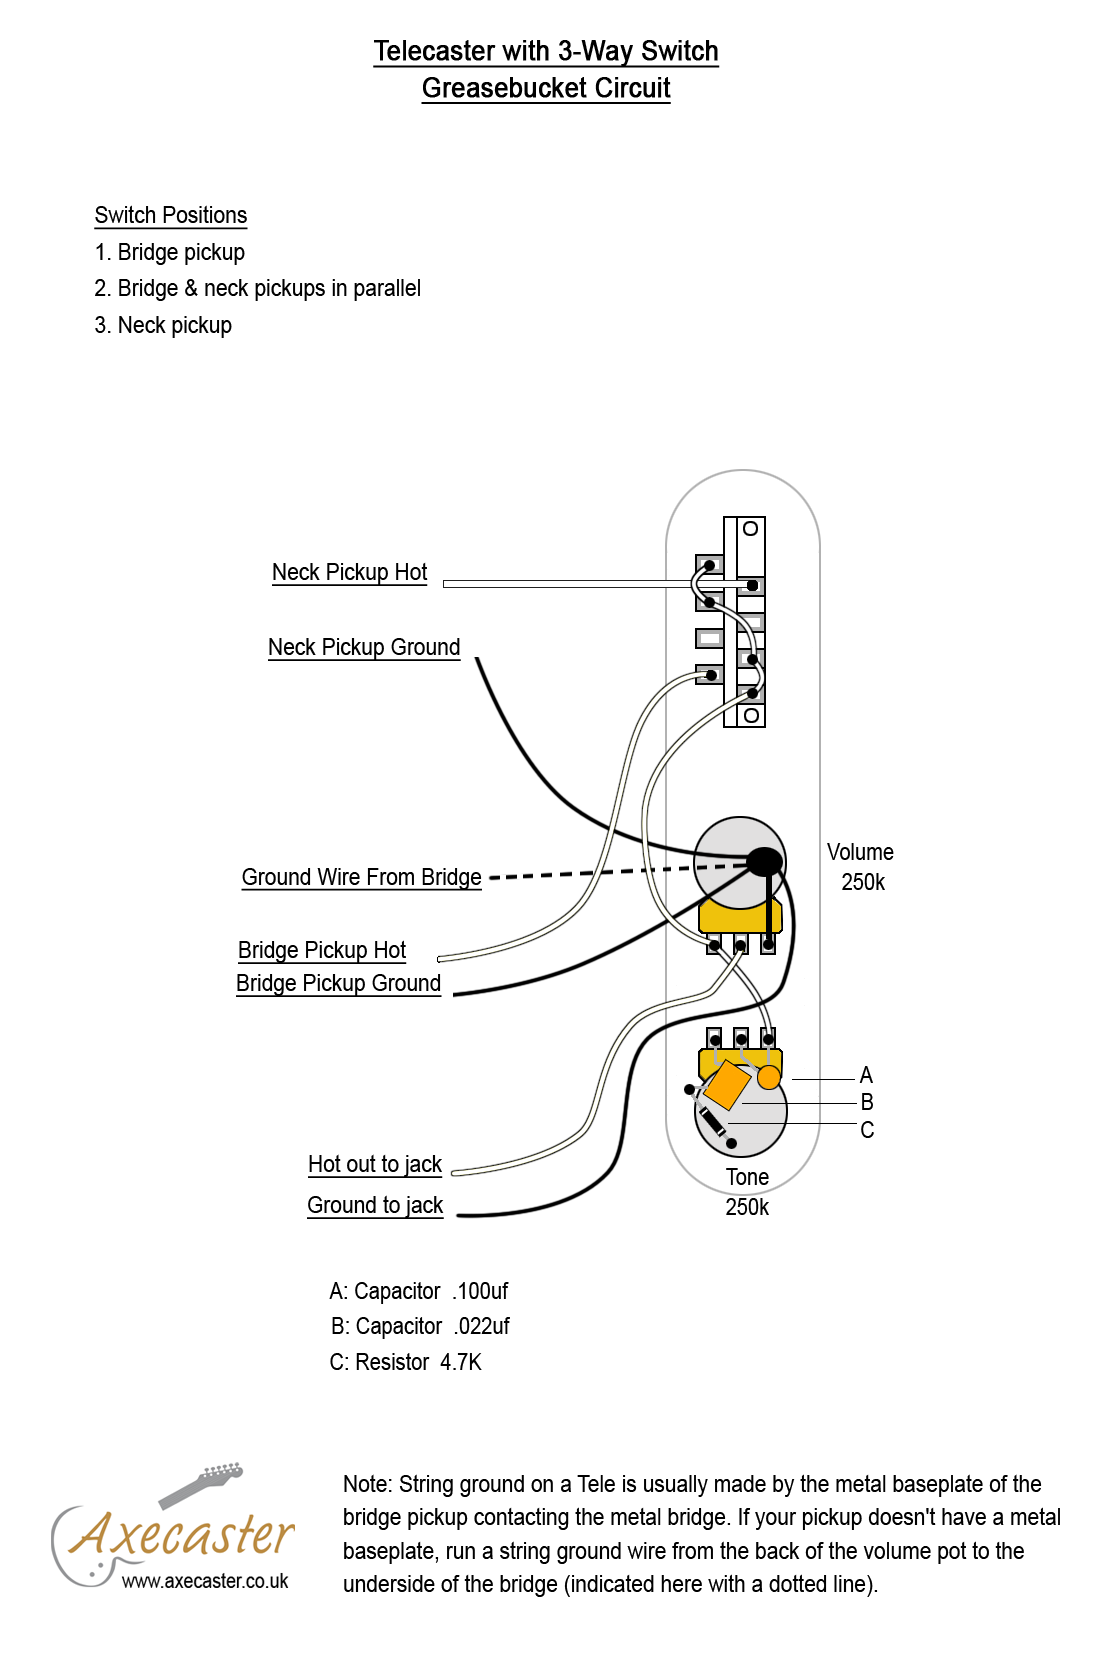 wiring diagrams axecaster, build it how you want itbe hard to see everything on the fender diagram here\u0027s a great video of mike eldred from the fender custom shop talking about the greasebucket circuit